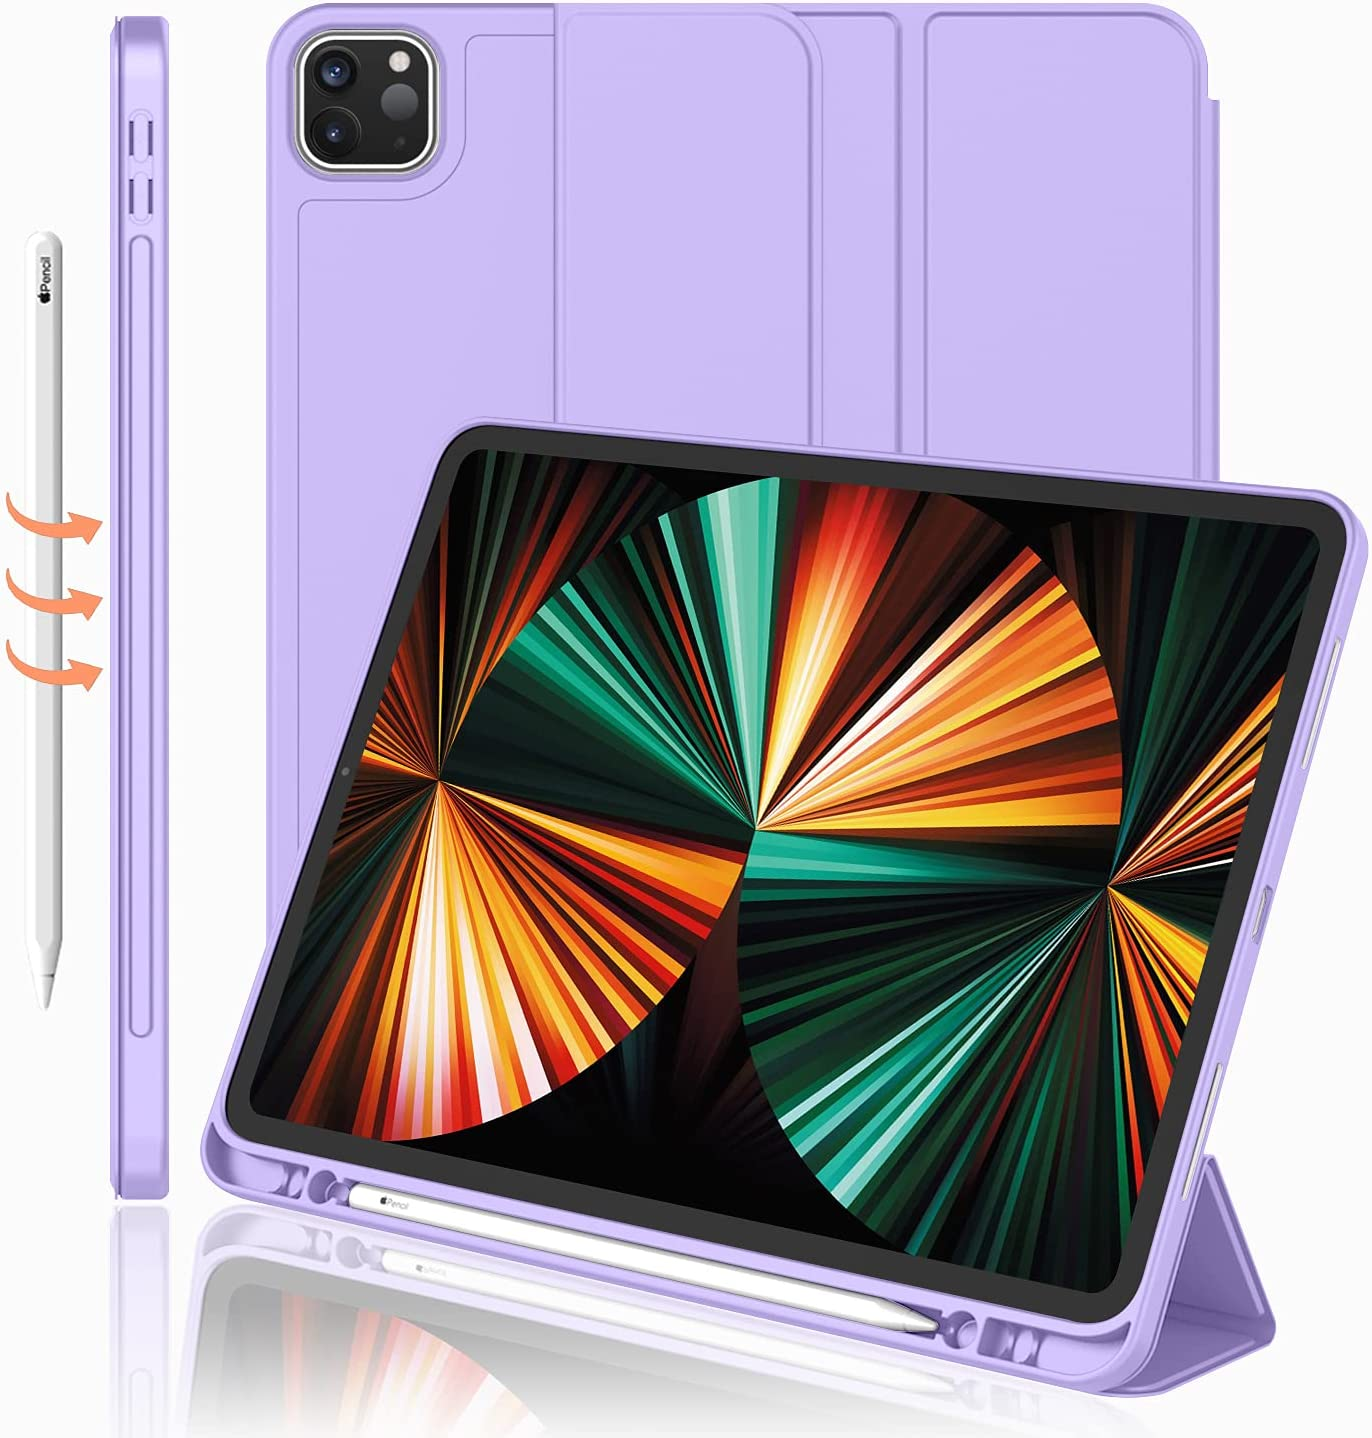 iMieet New iPad Pro 12.9 Case 2021(5th Gen) with Pencil Holder [Support iPad 2nd Pencil Charging/Pair],Trifold Stand Smart Case with Soft TPU Back,Auto Wake/Sleep(Clove Purple)